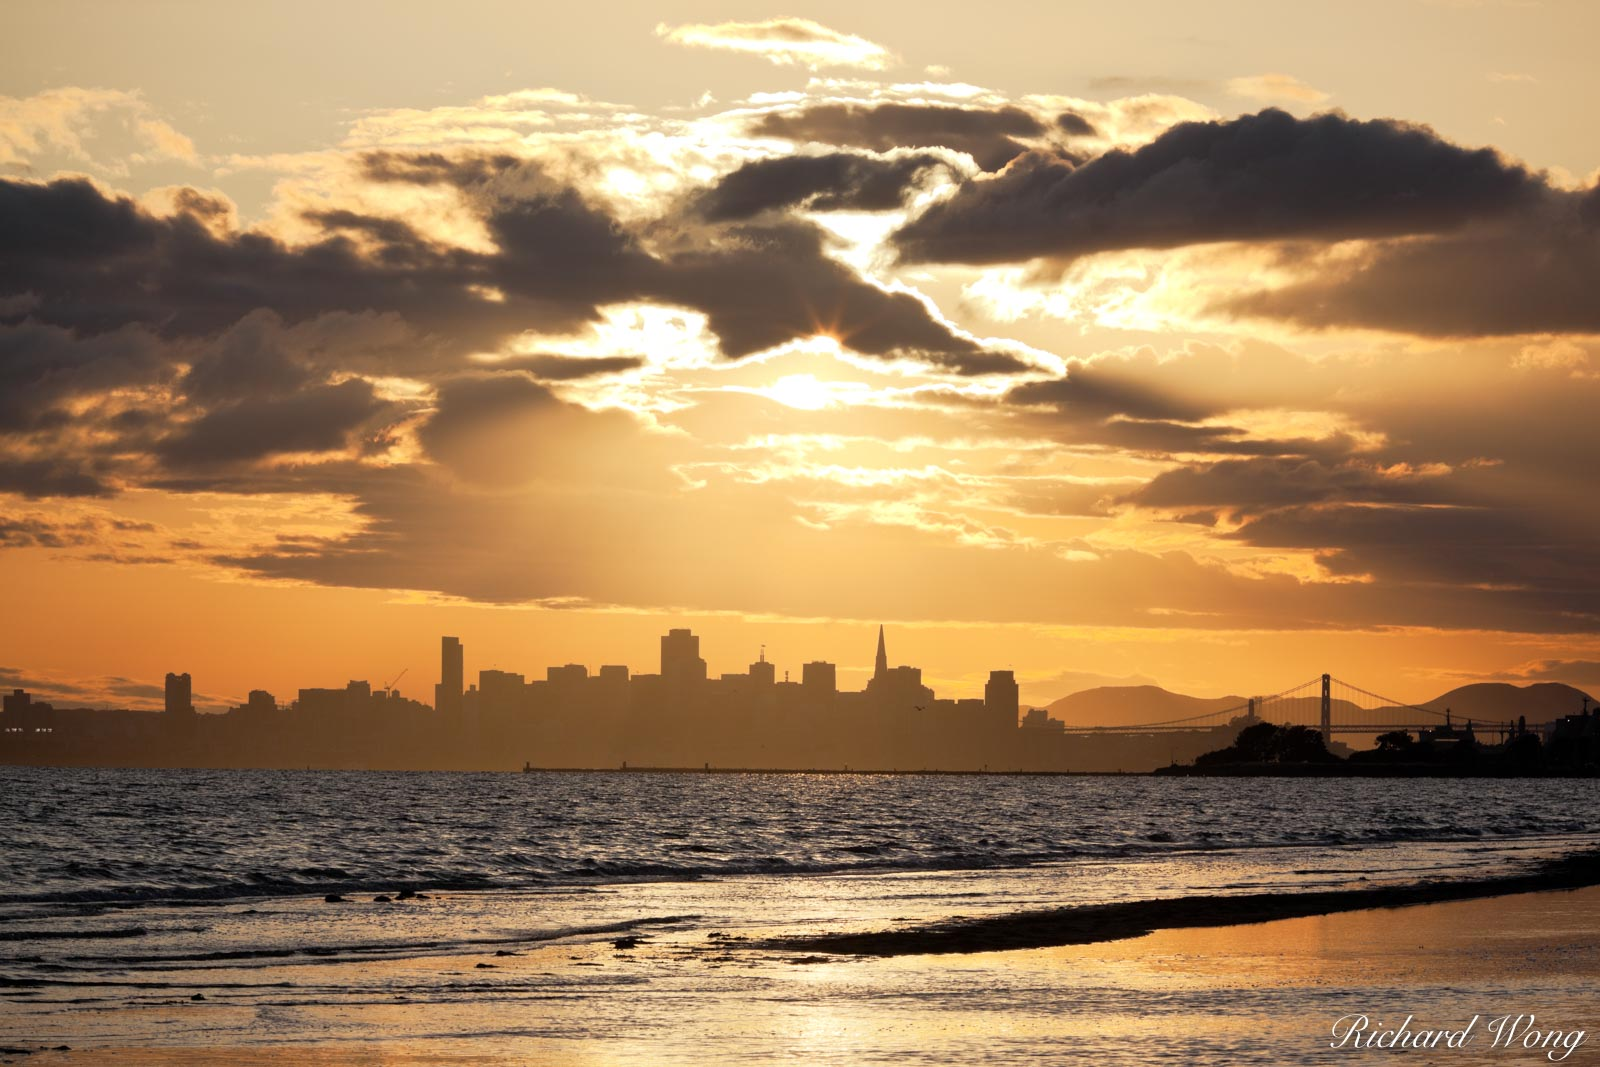 Crown Memorial Beach Sunset With Downtown San Francisco Skyline in Background, Alameda, California, photo, photo